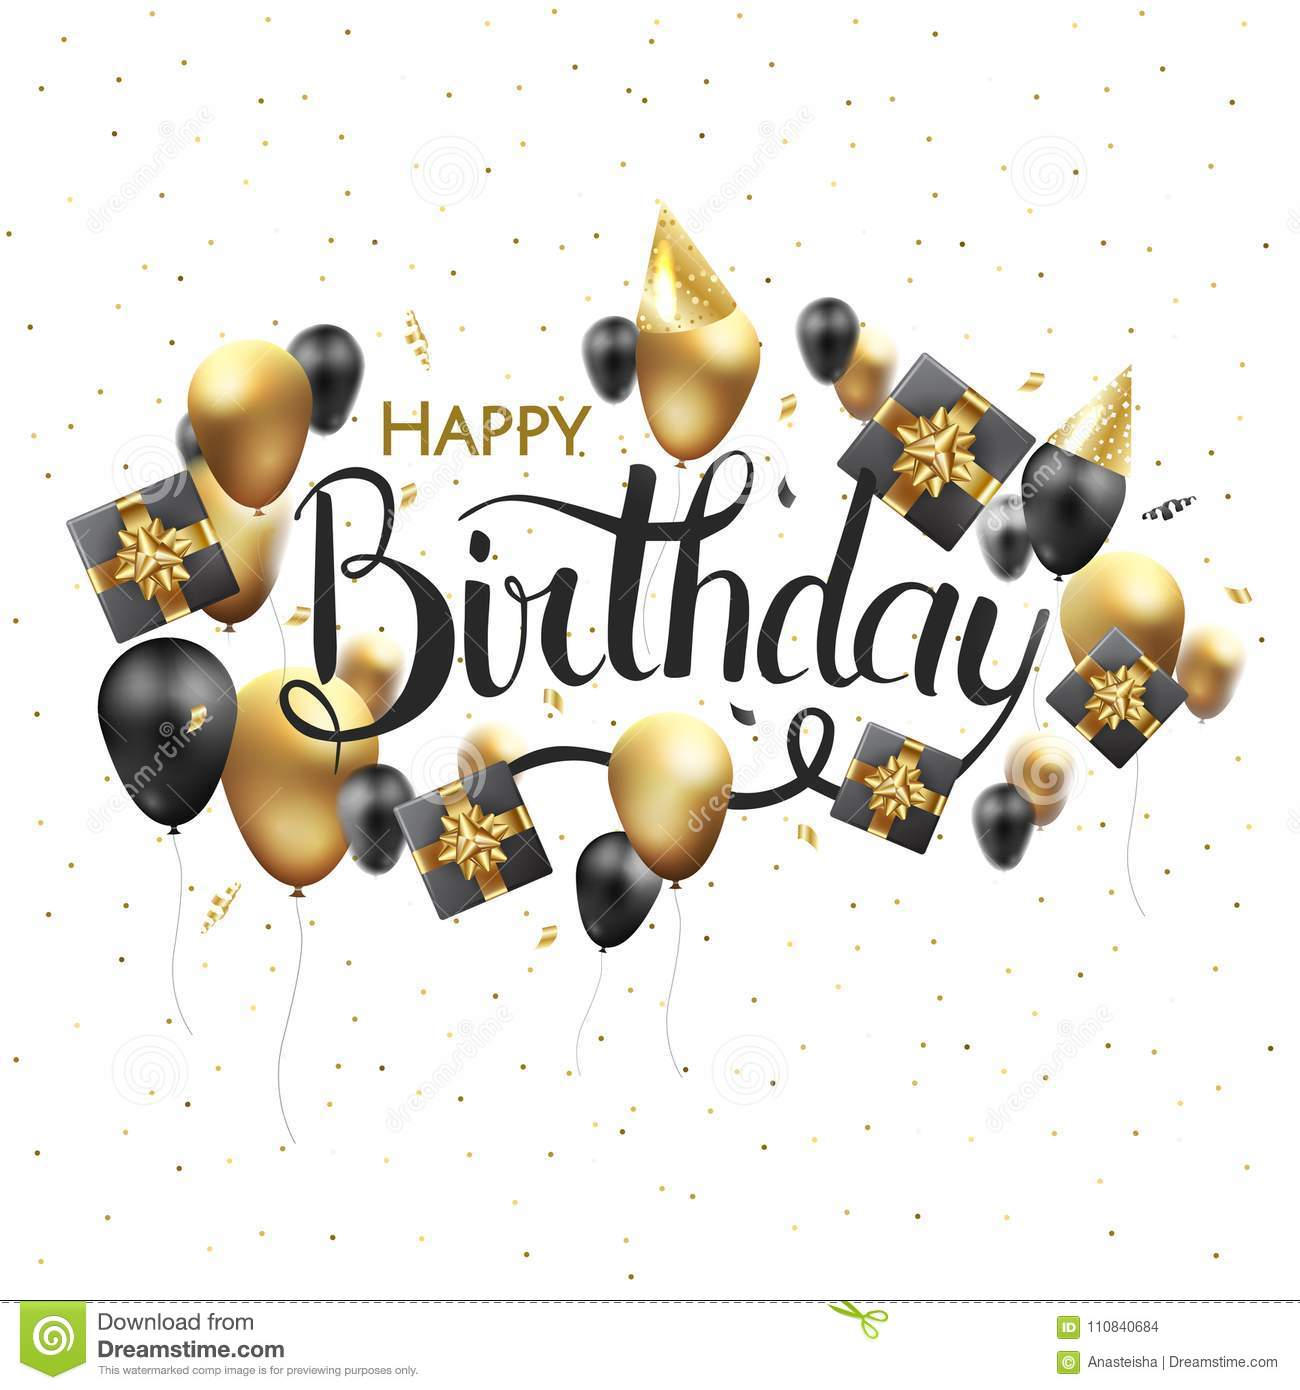 Happy birthday typography vector design for greeting cards and happy birthday typography vector design for greeting cards and poster with balloon confetti and gift box design template for birthday celebration m4hsunfo